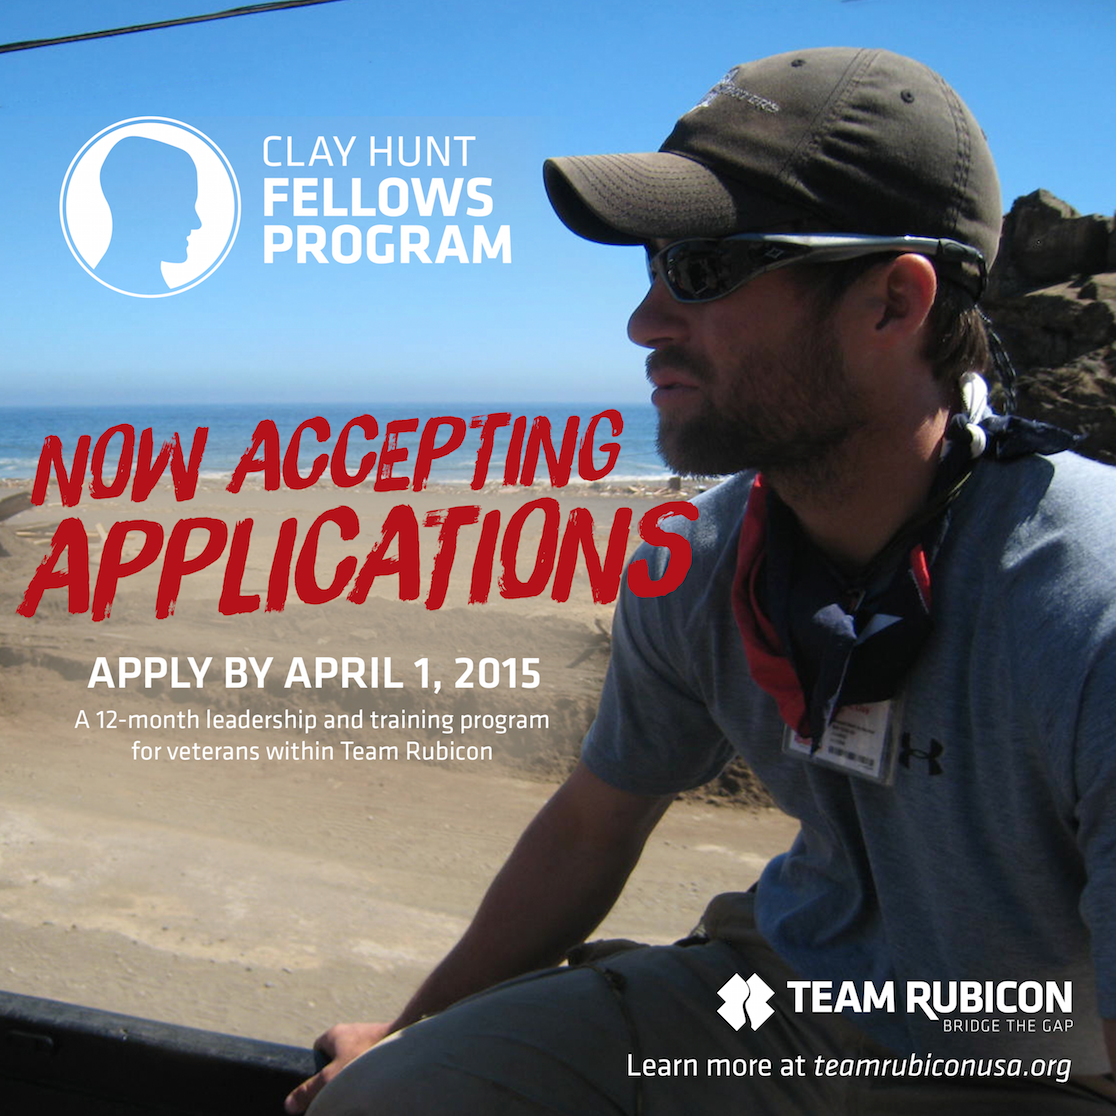 Now seeking candidates for the third class of the Clay Hunt Fellows Program. Apply today: http://t.co/2SDH3bfxLb http://t.co/vmVHhBsfXy